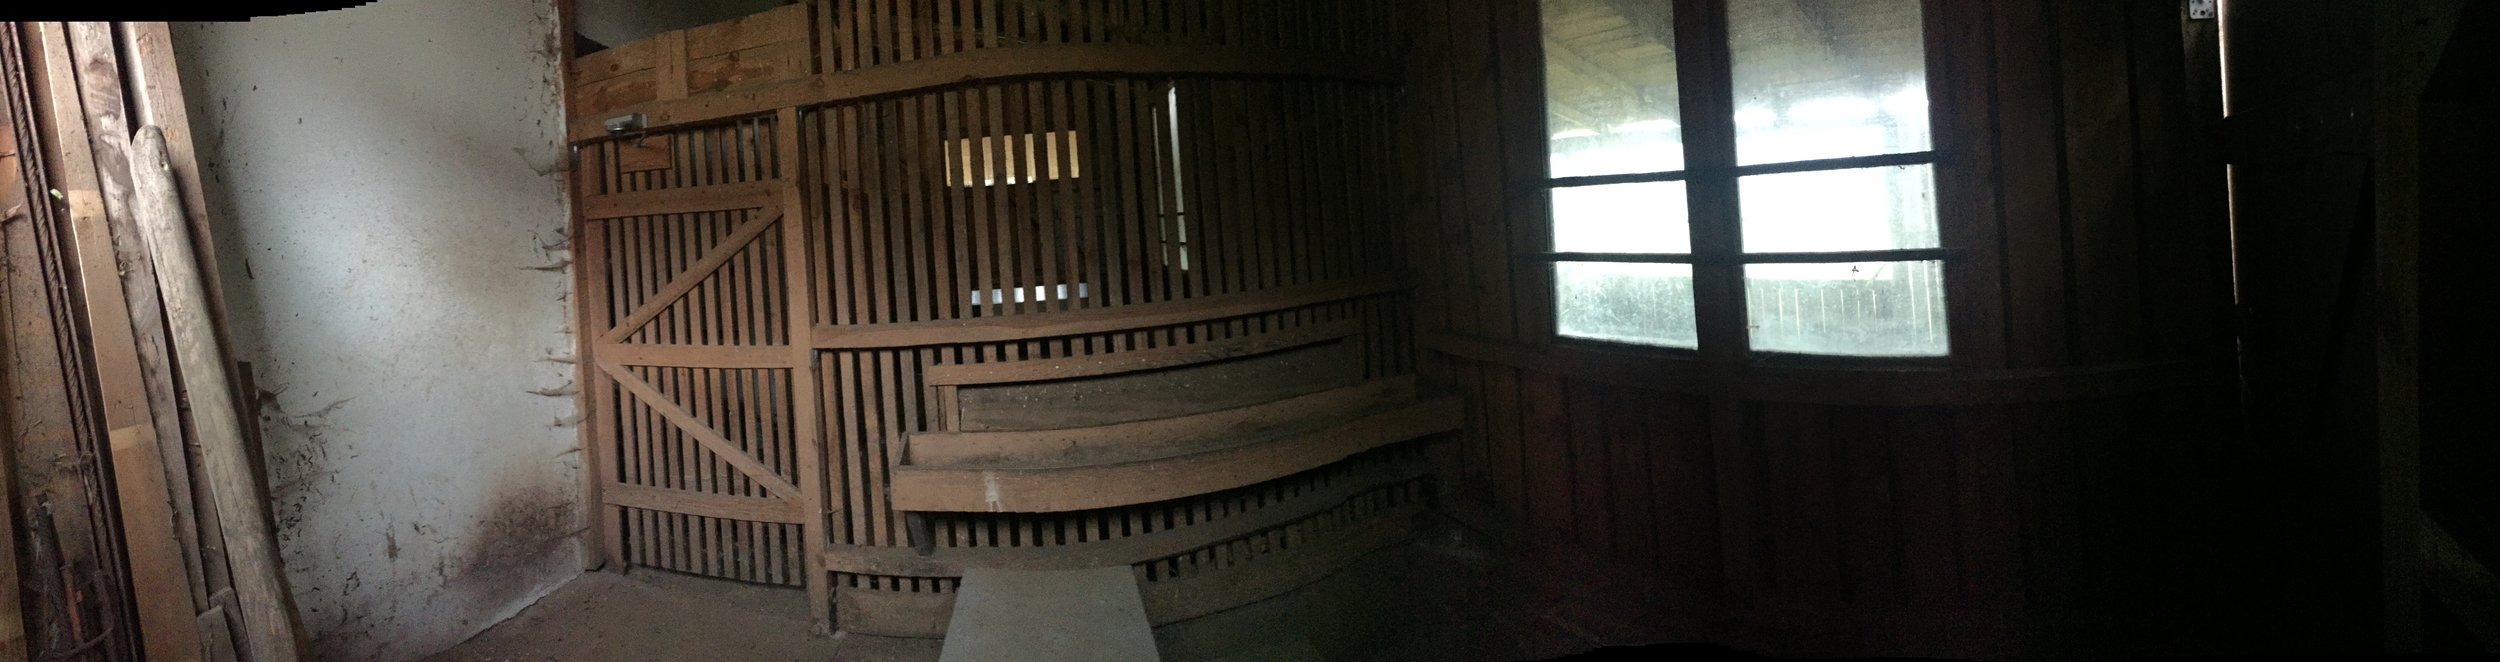 panorama-indoor-lost-place-stall-shooting-location.jpg